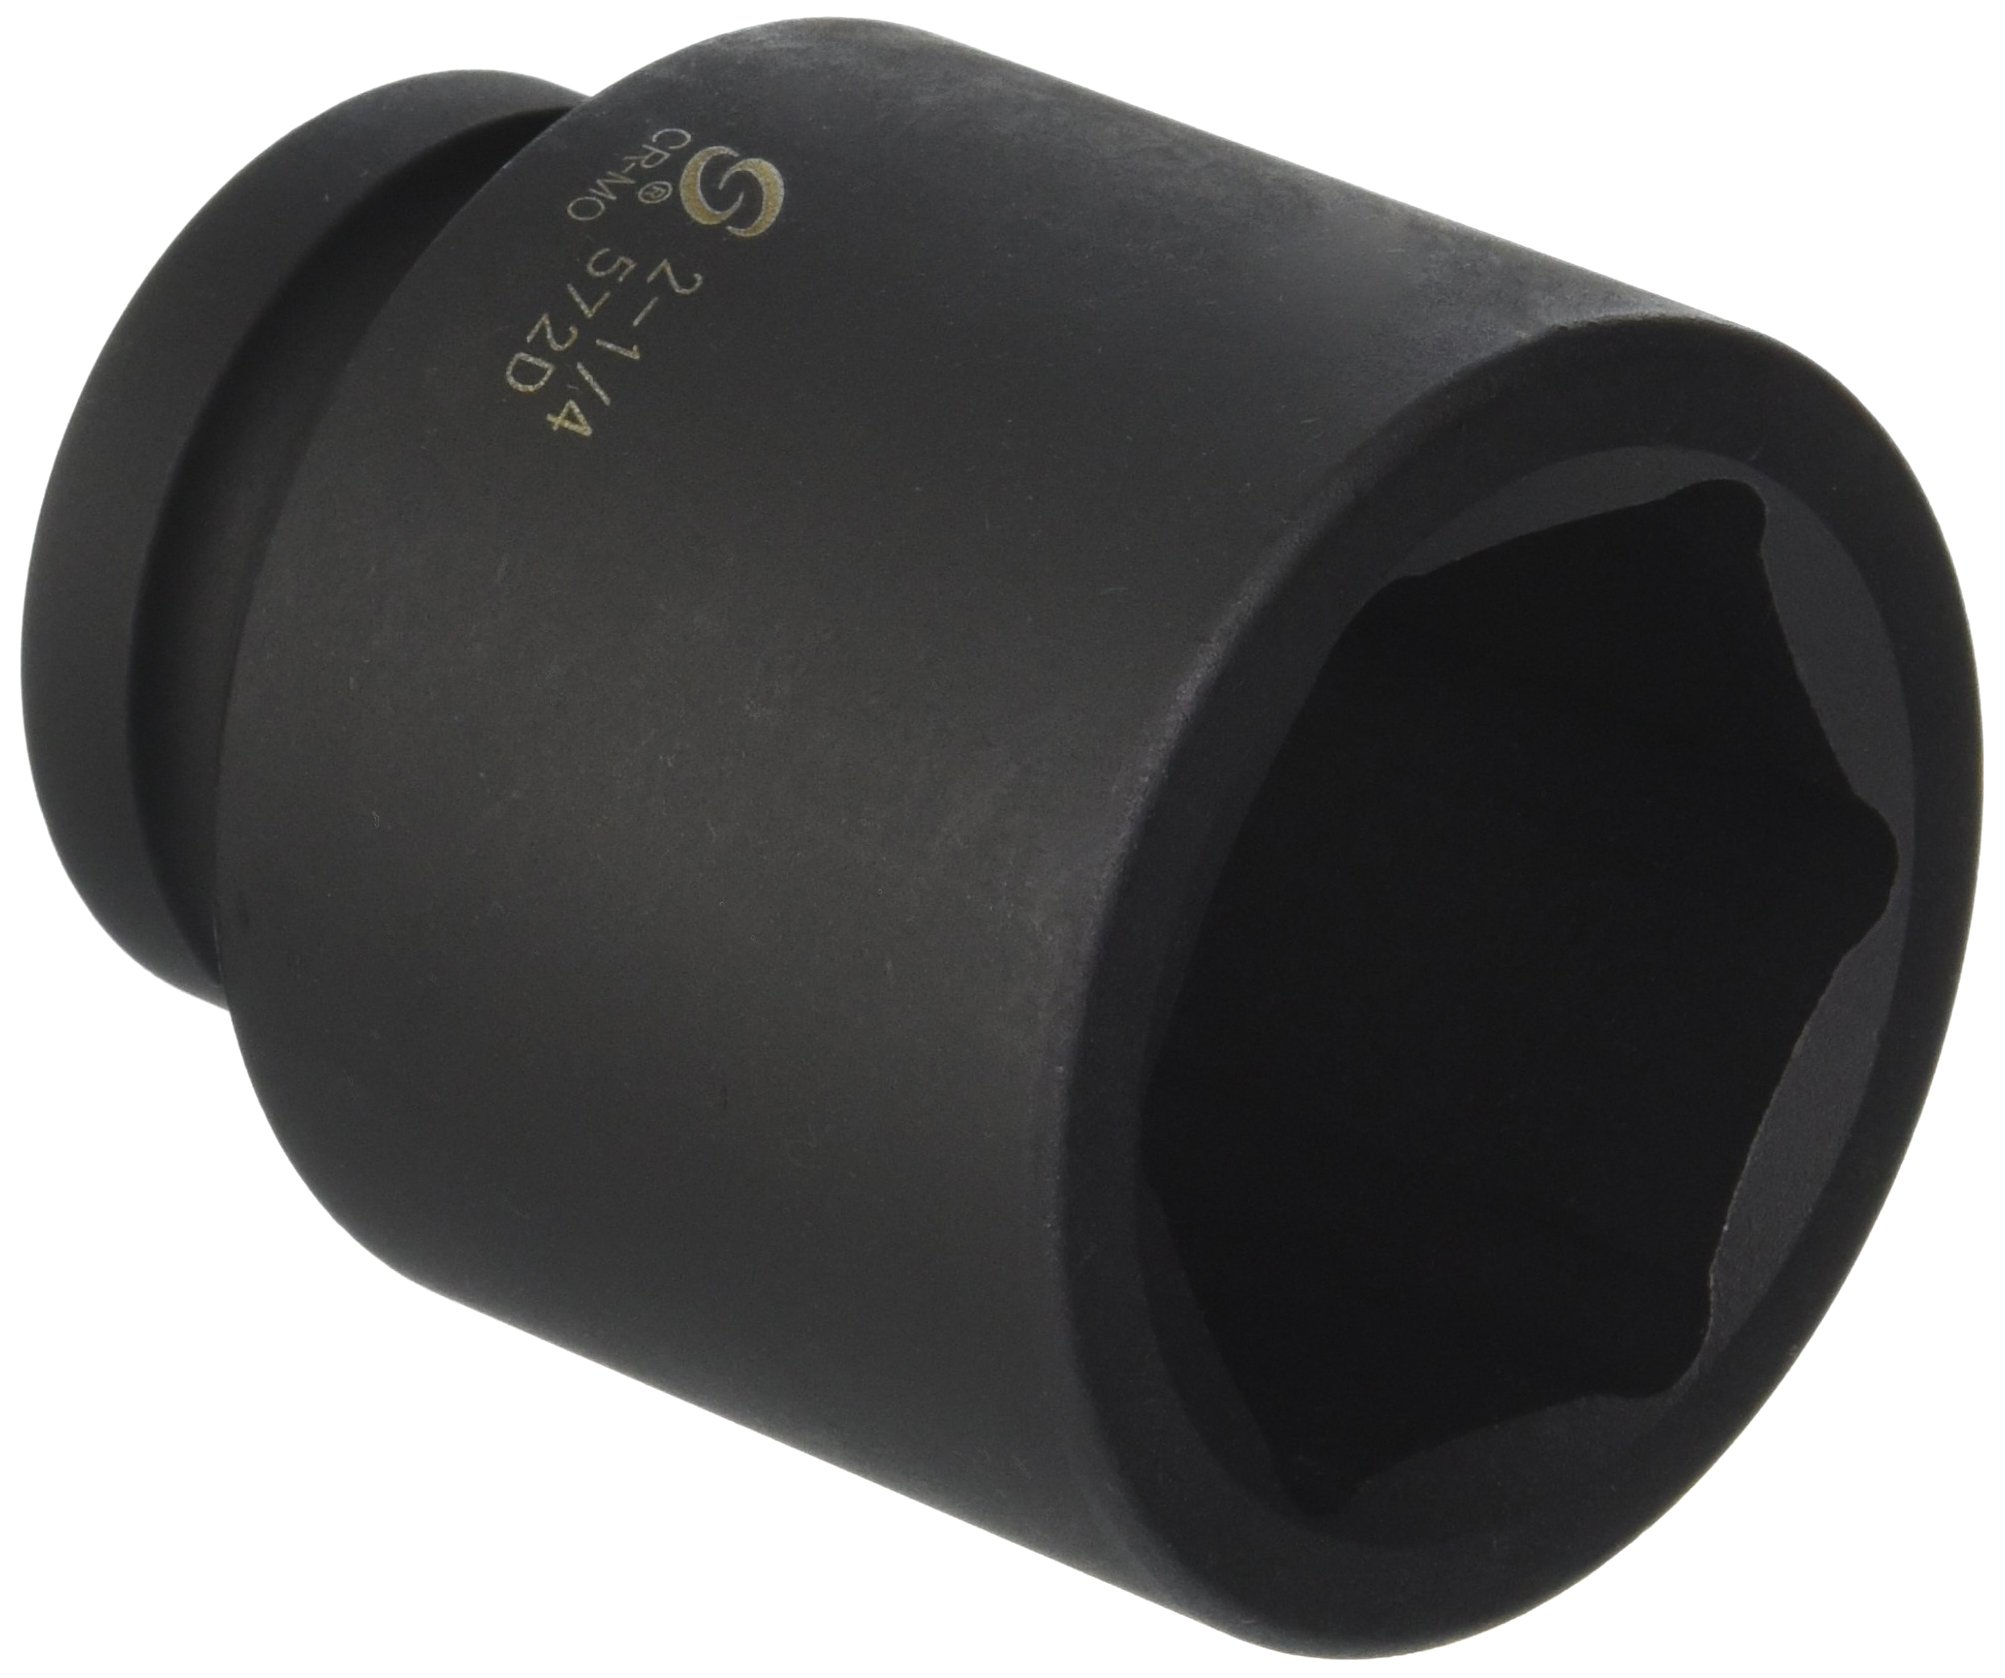 Sunex 572D 1-Inch Drive 2-1/4-Inch Deep Impact Socket by Sunex Tools